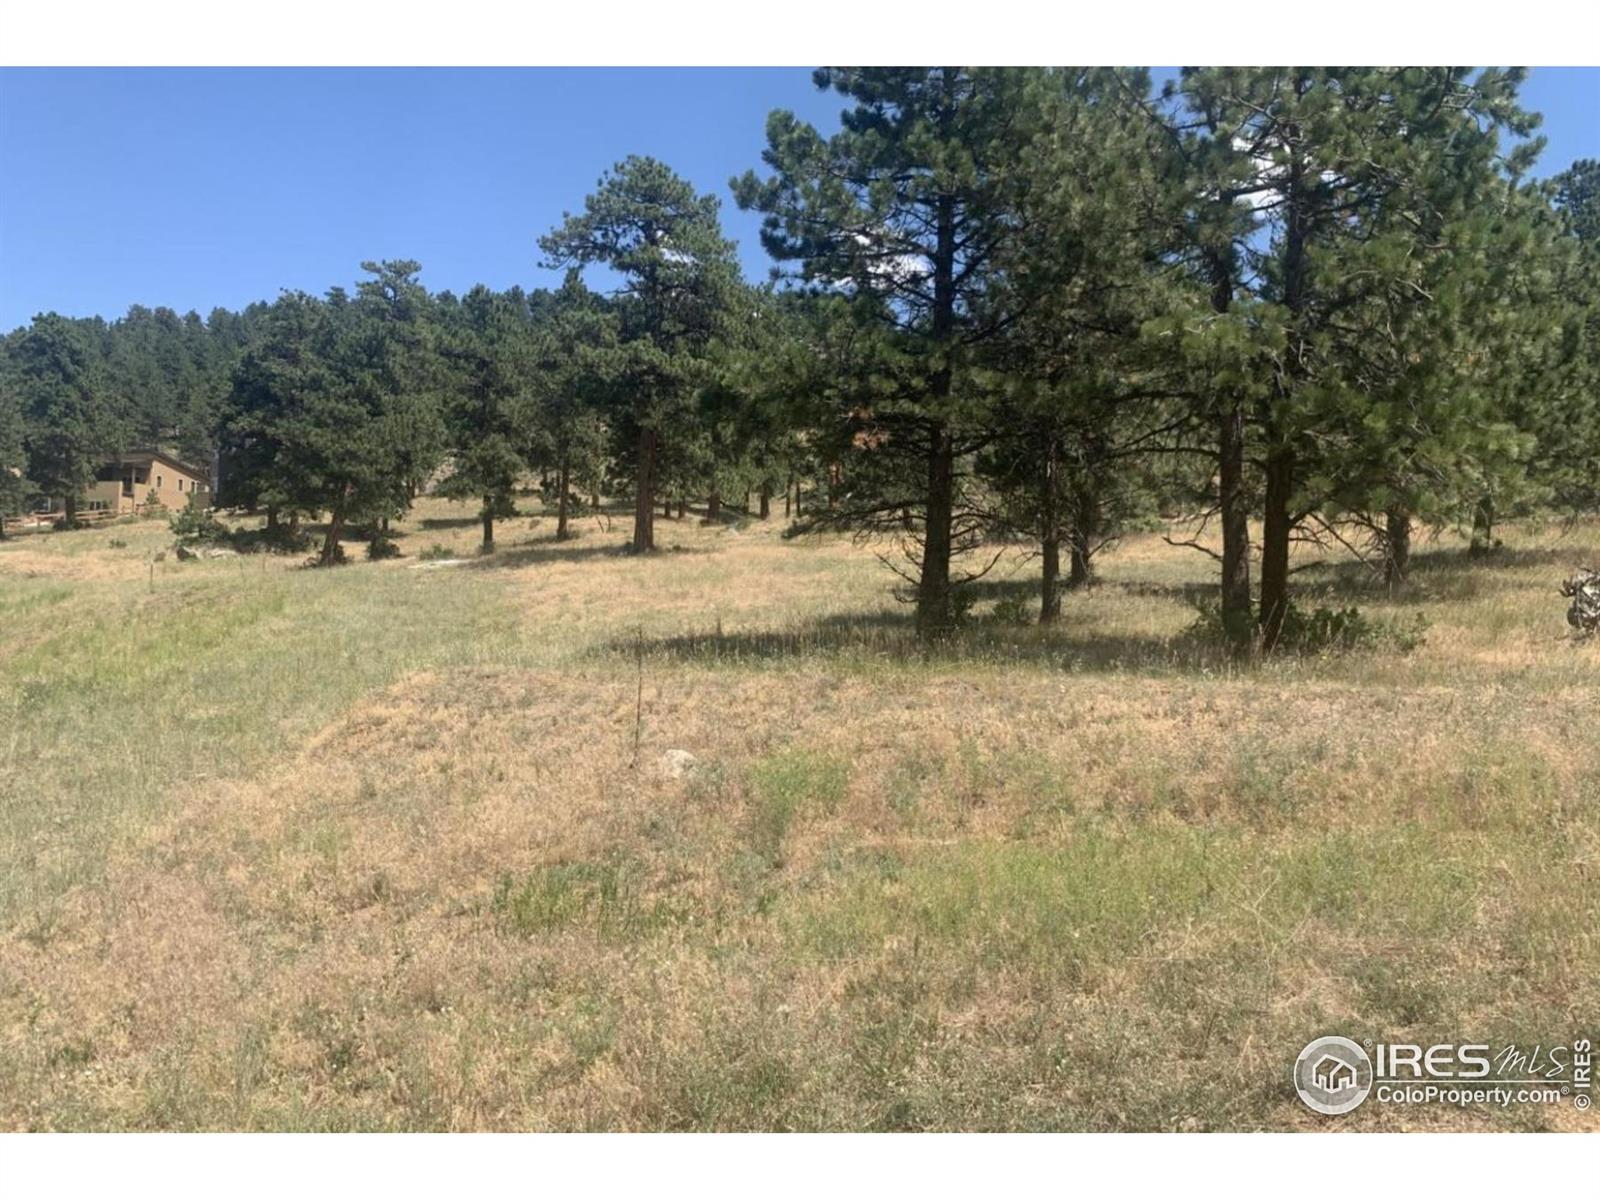 877 Continental View Road, Evergreen, CO 80439 - #: IR918712